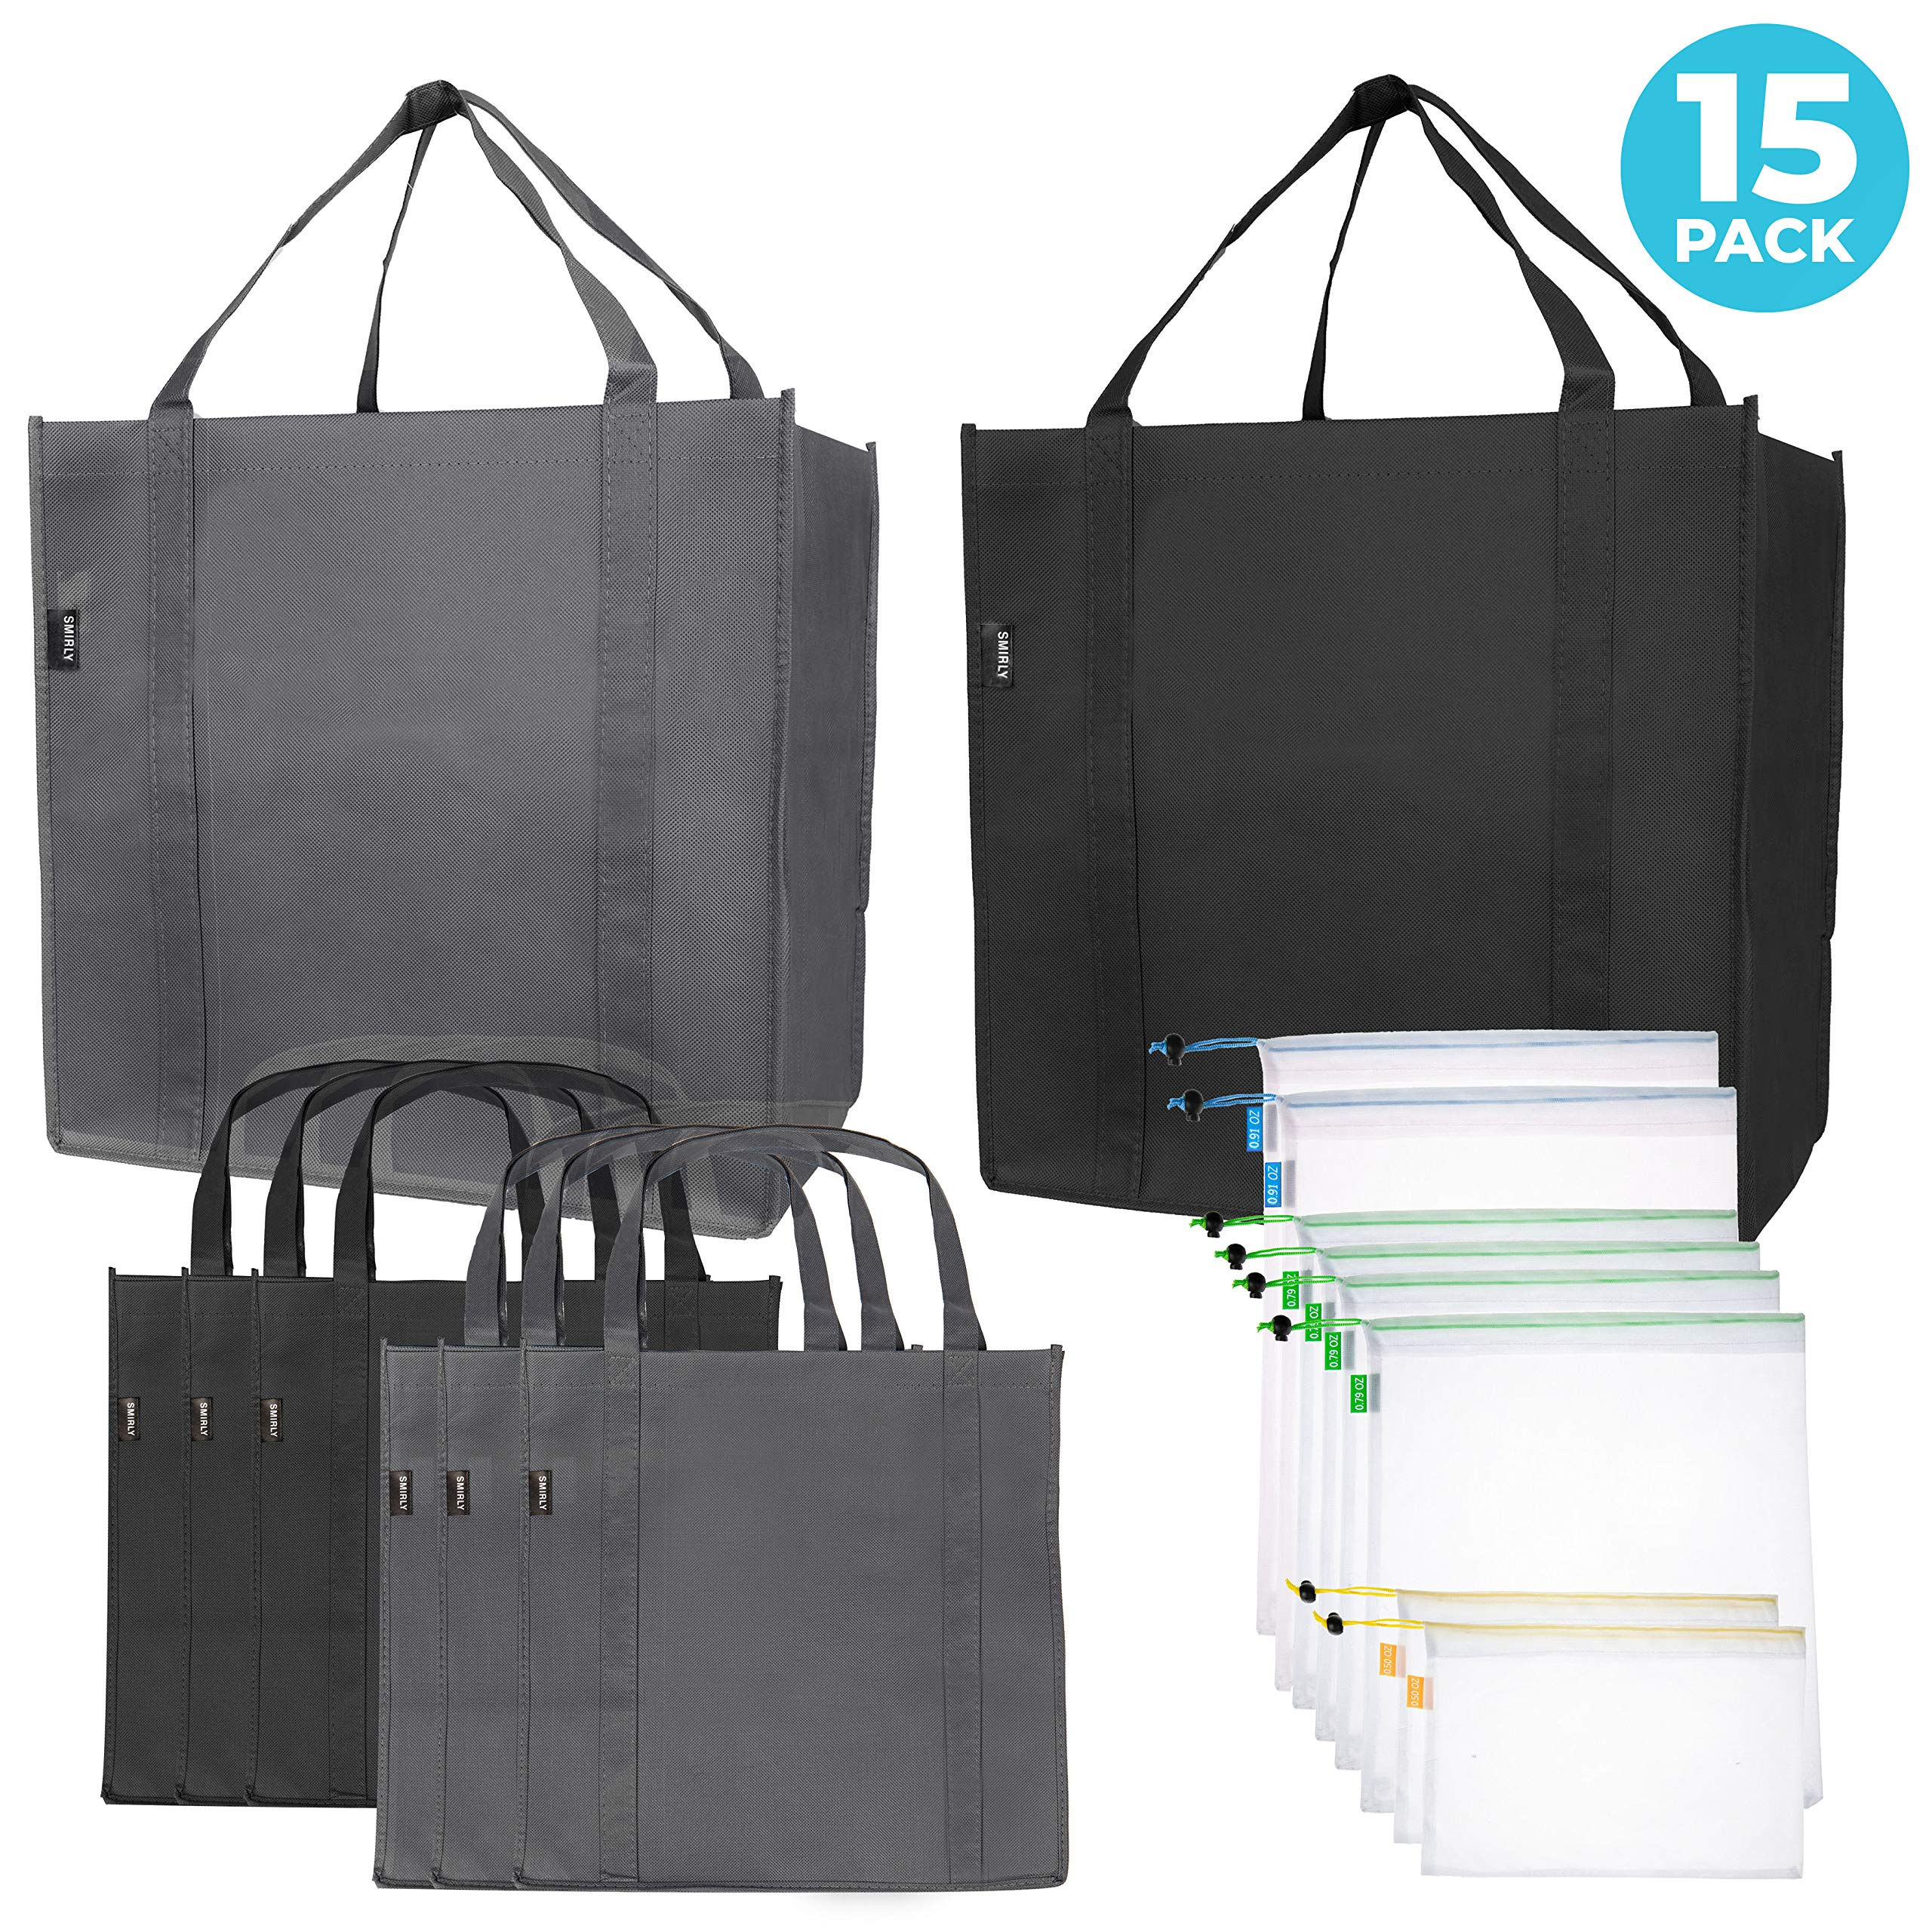 Reusable Folding Grocery and Produce Bags: 6 Large Fabric Totes with Handles and Inner Pocket and 9 Eco Friendly Breathable Mesh Produce Bags – Foldable Cloth Shopping Tote and Mesh Bag Set – 15 Pack